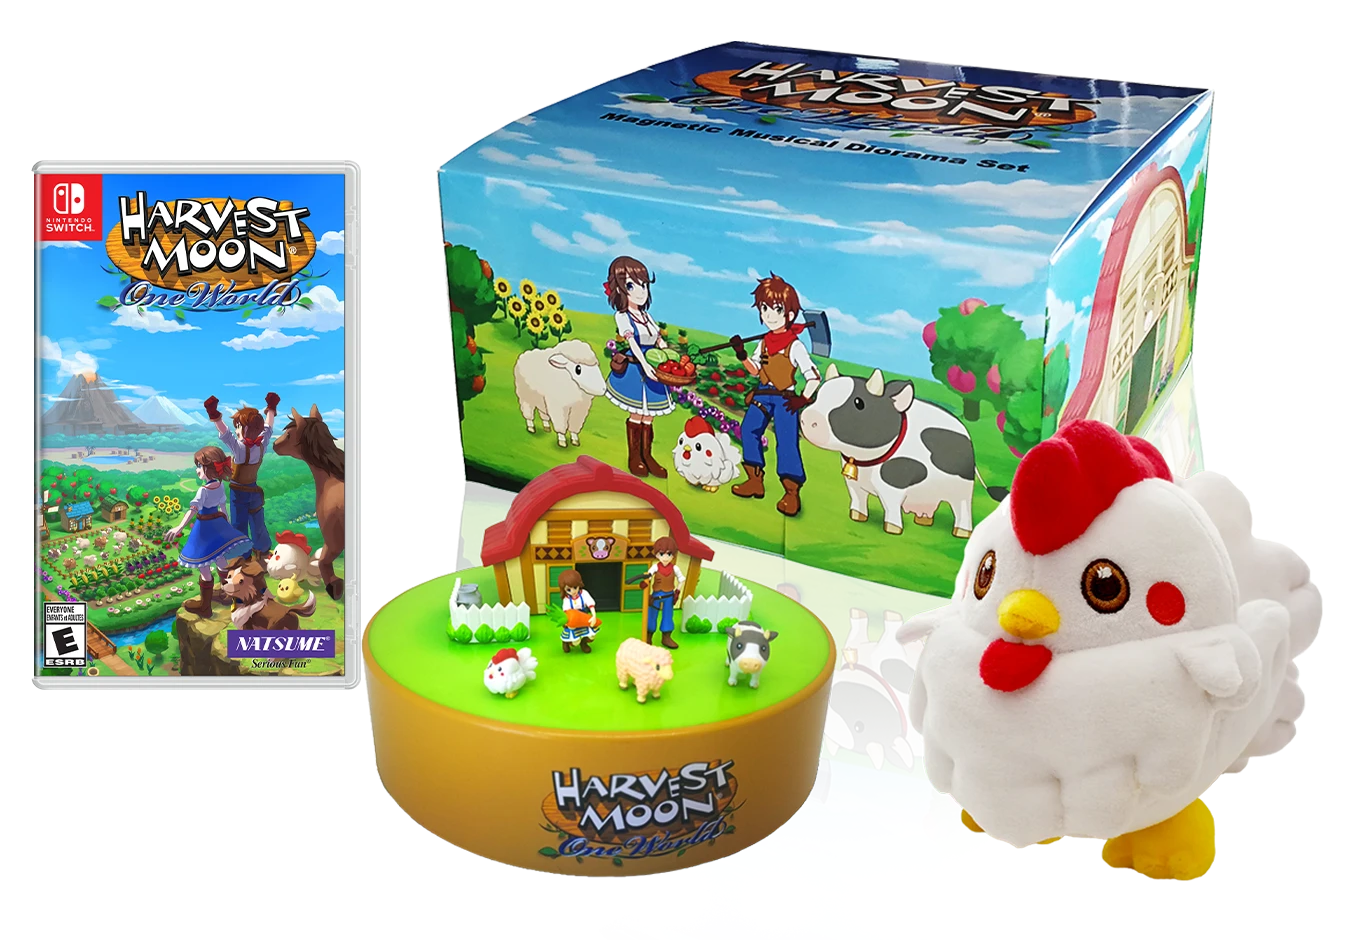 Pre-orders now open for Harvest Moon: One World Collector's Edition